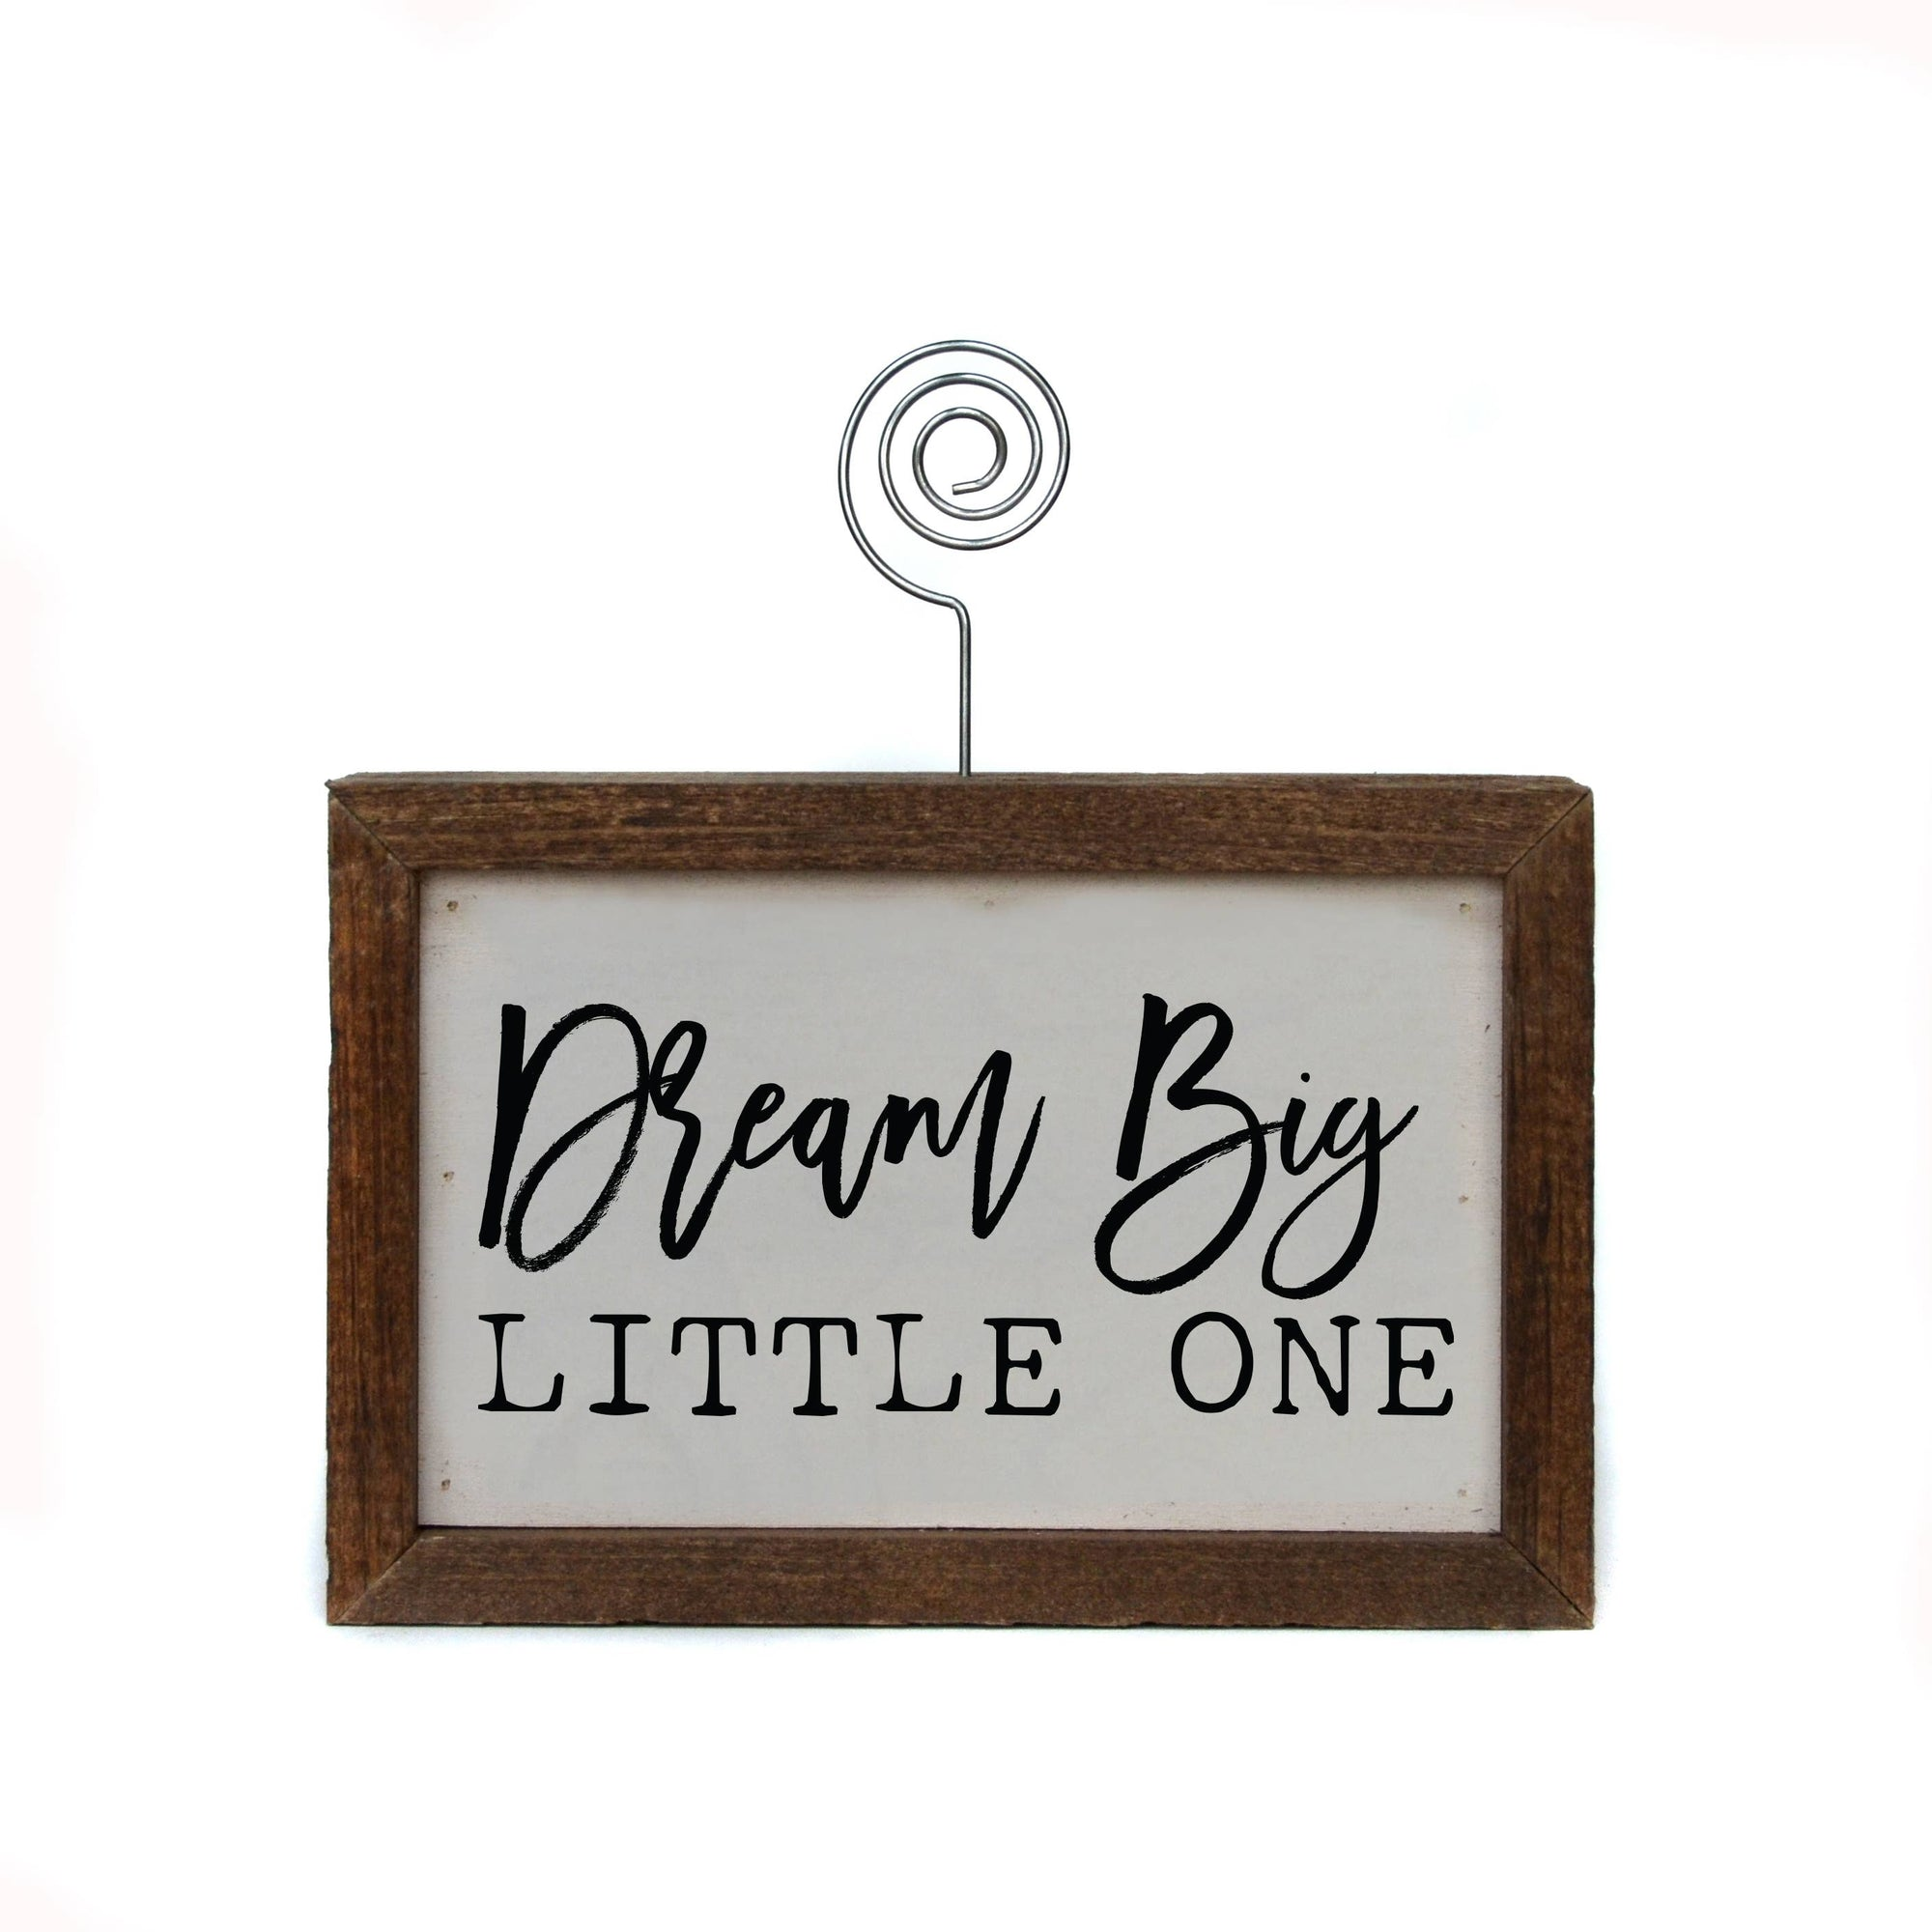 Tabletop Picture Frame Block - Dream Big Little One - Driftless